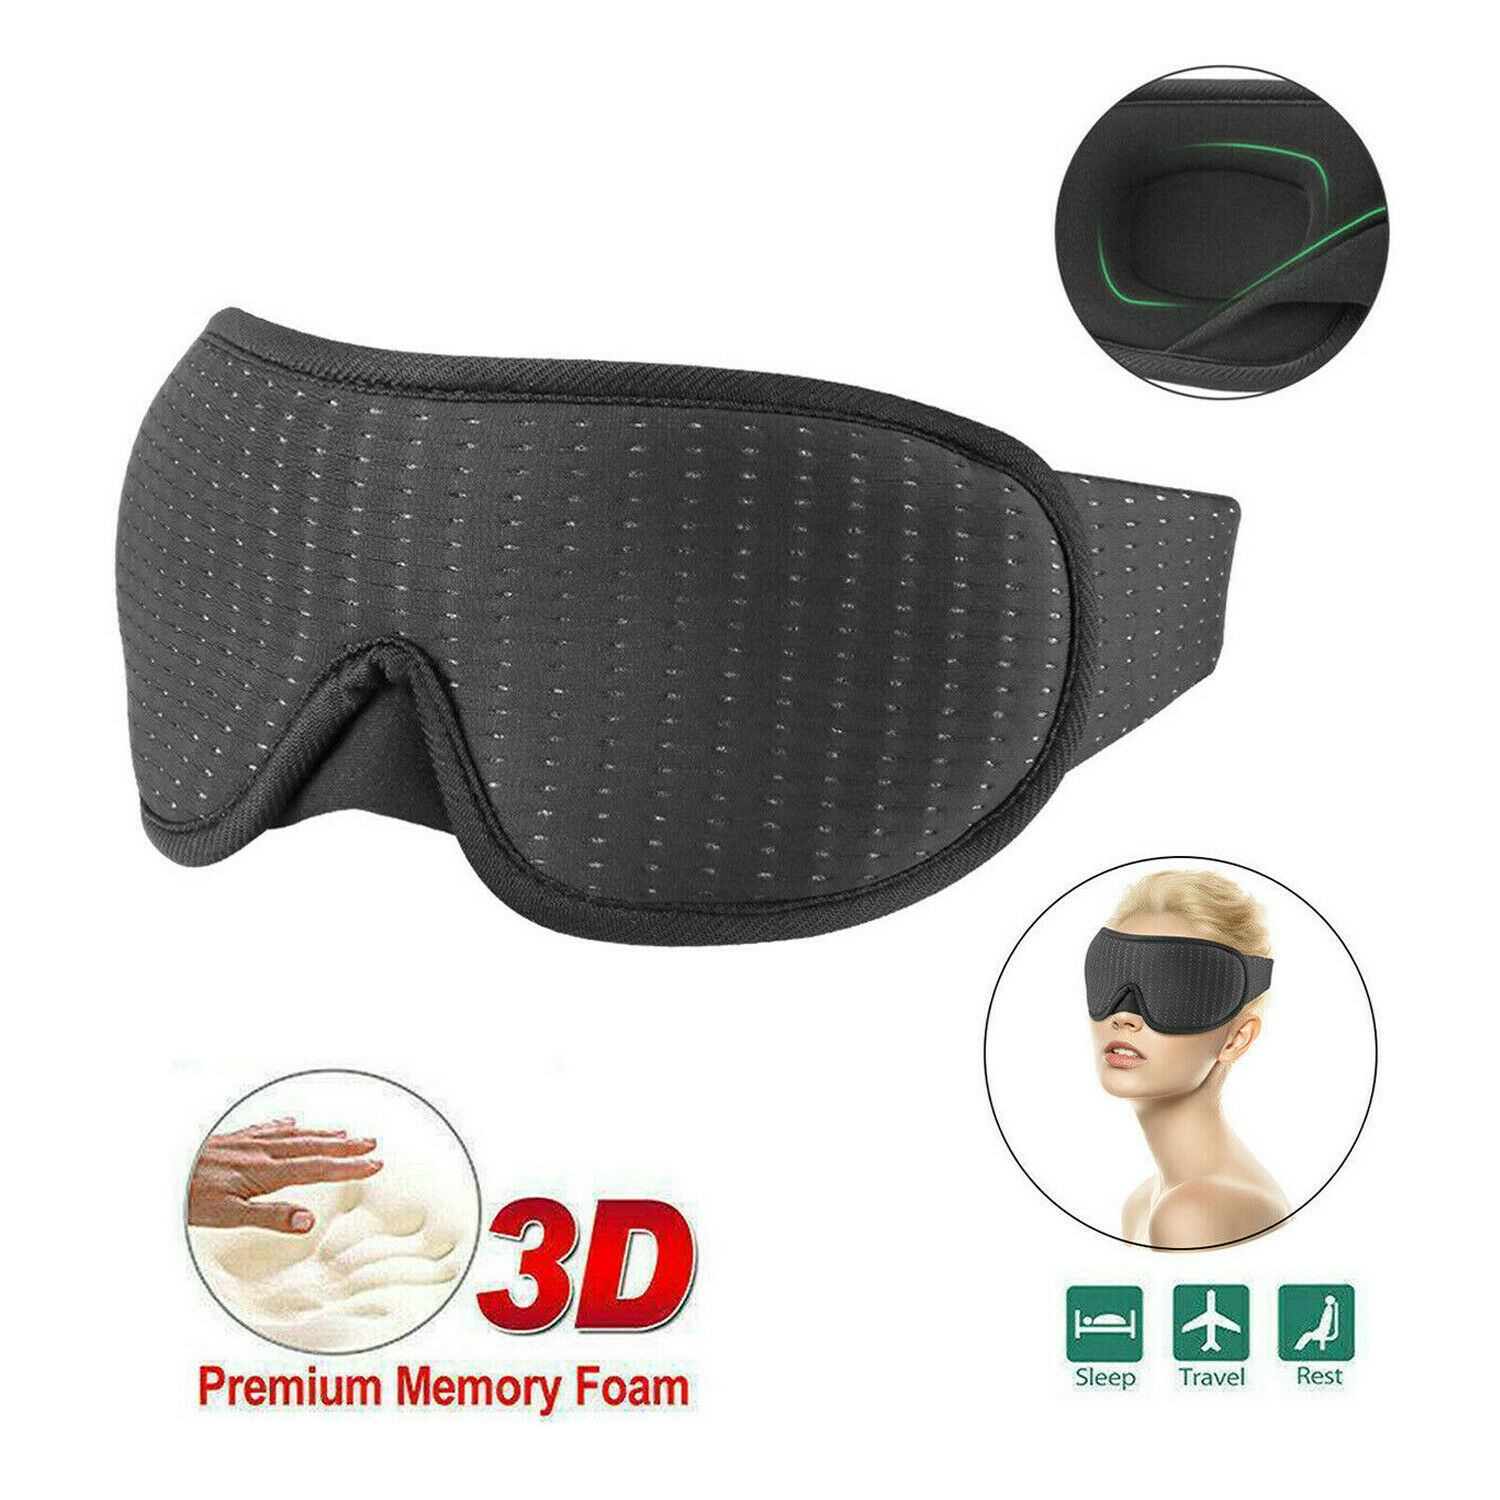 Travel 3D Eye Cover Sleep Soft Padded Shade Cover Rest Relax Sleeping Blindfold Health & Beauty